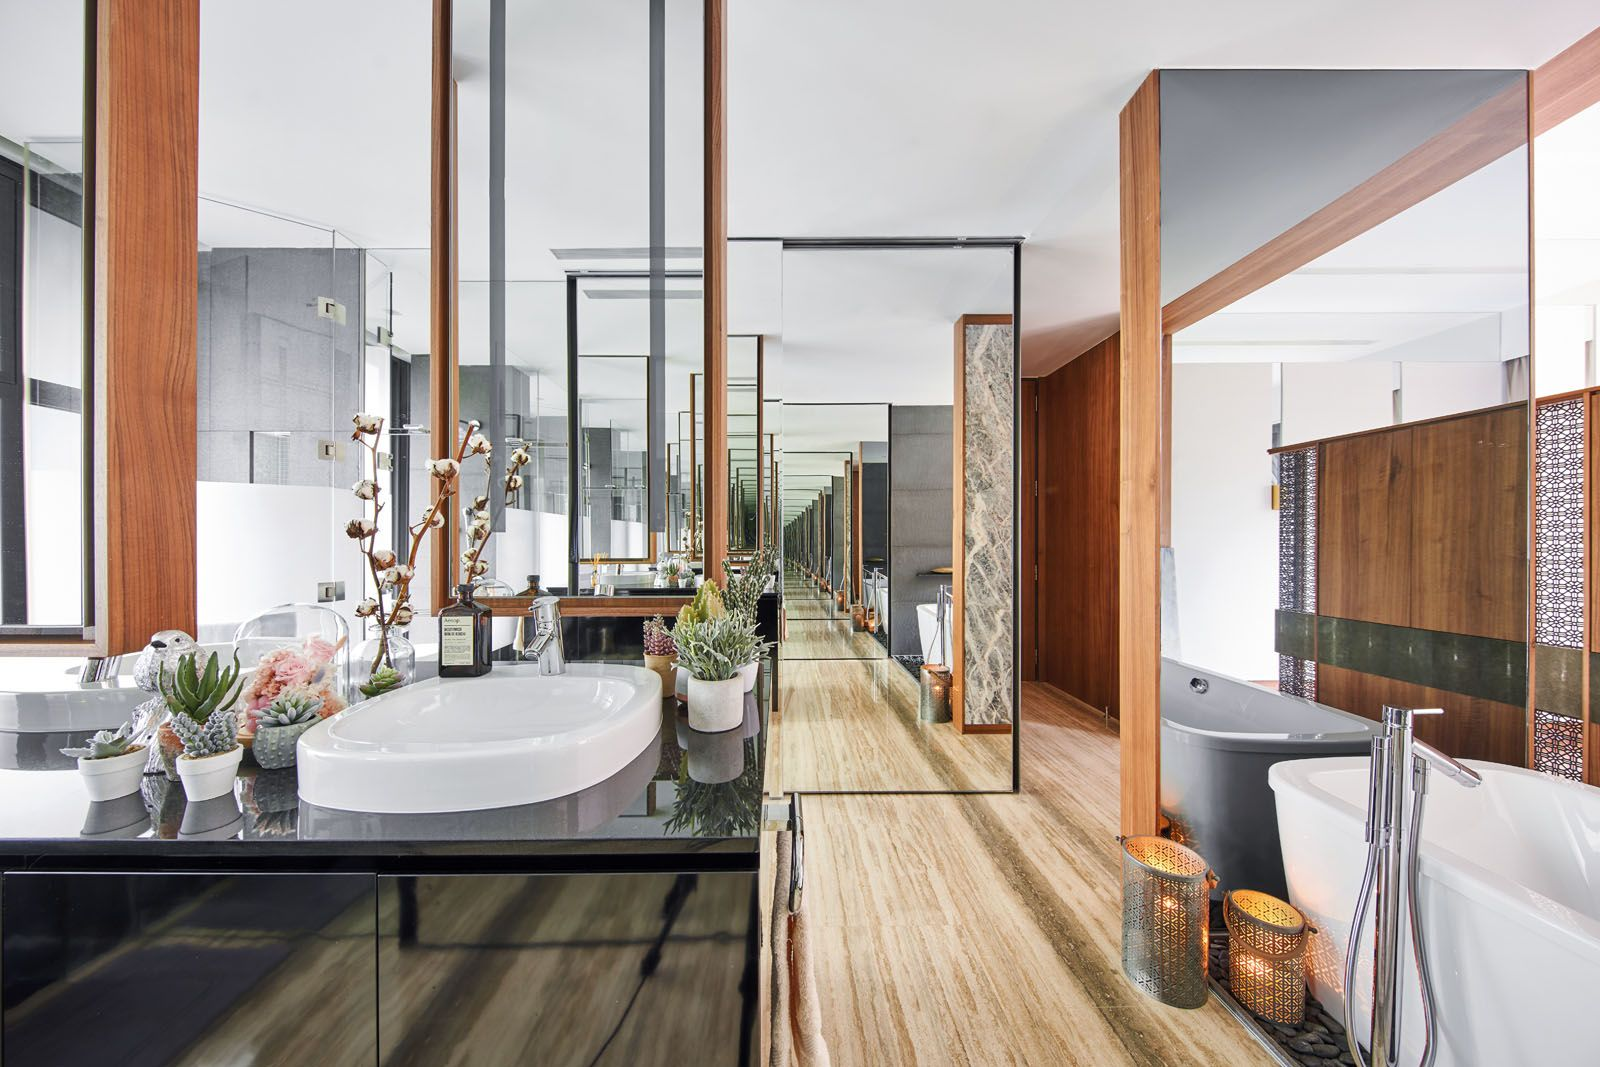 The clever use of glass in the master bathroom creates the illusion of an endless hallway;